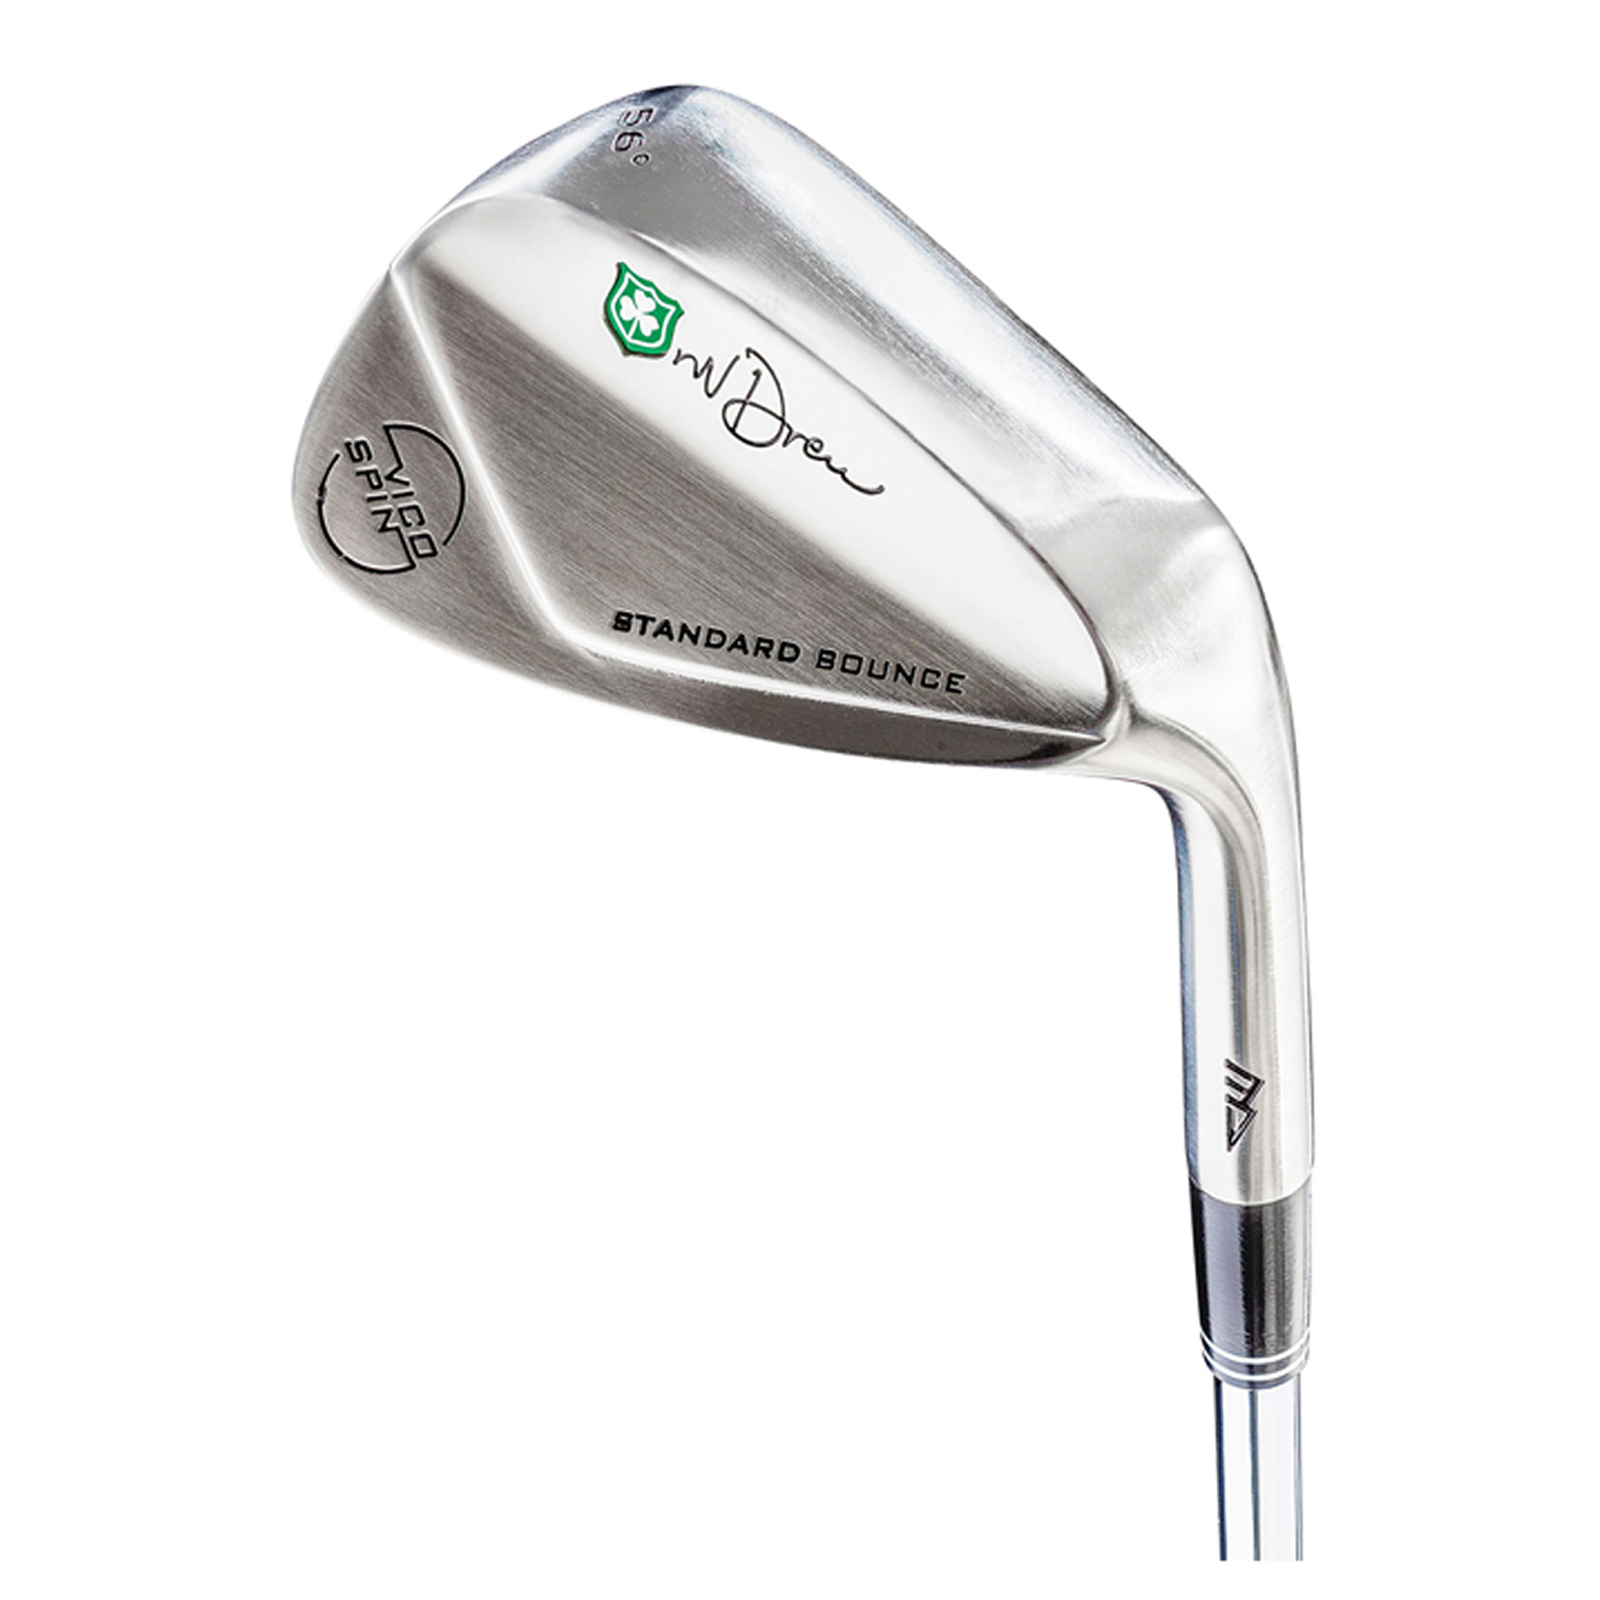 2013-MD-GOLF-NORMAN-DREW-NV-WEDGE-LOW-STANDARD-BOUNCE-TOUR-SATIN-CLUB-NEW